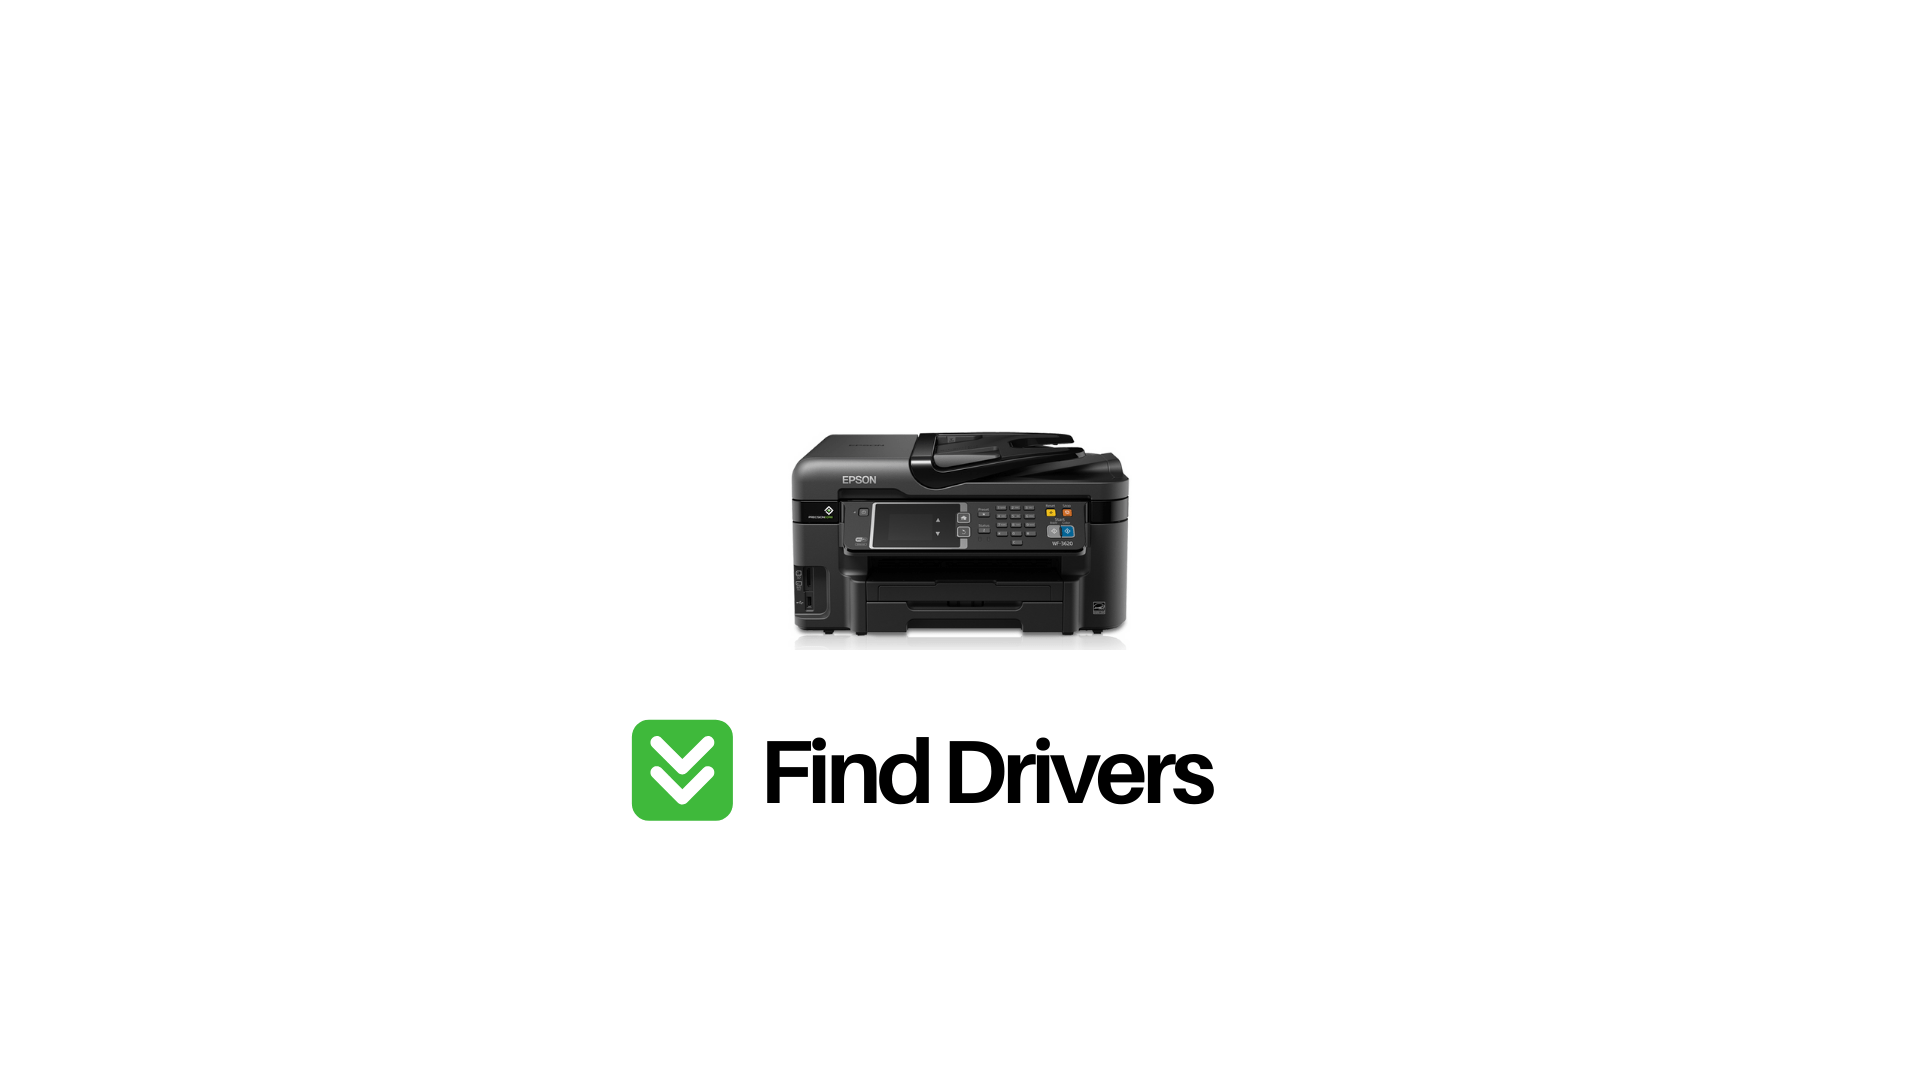 Canon MP620 Driver Downloads for Windows 10, 8, 7